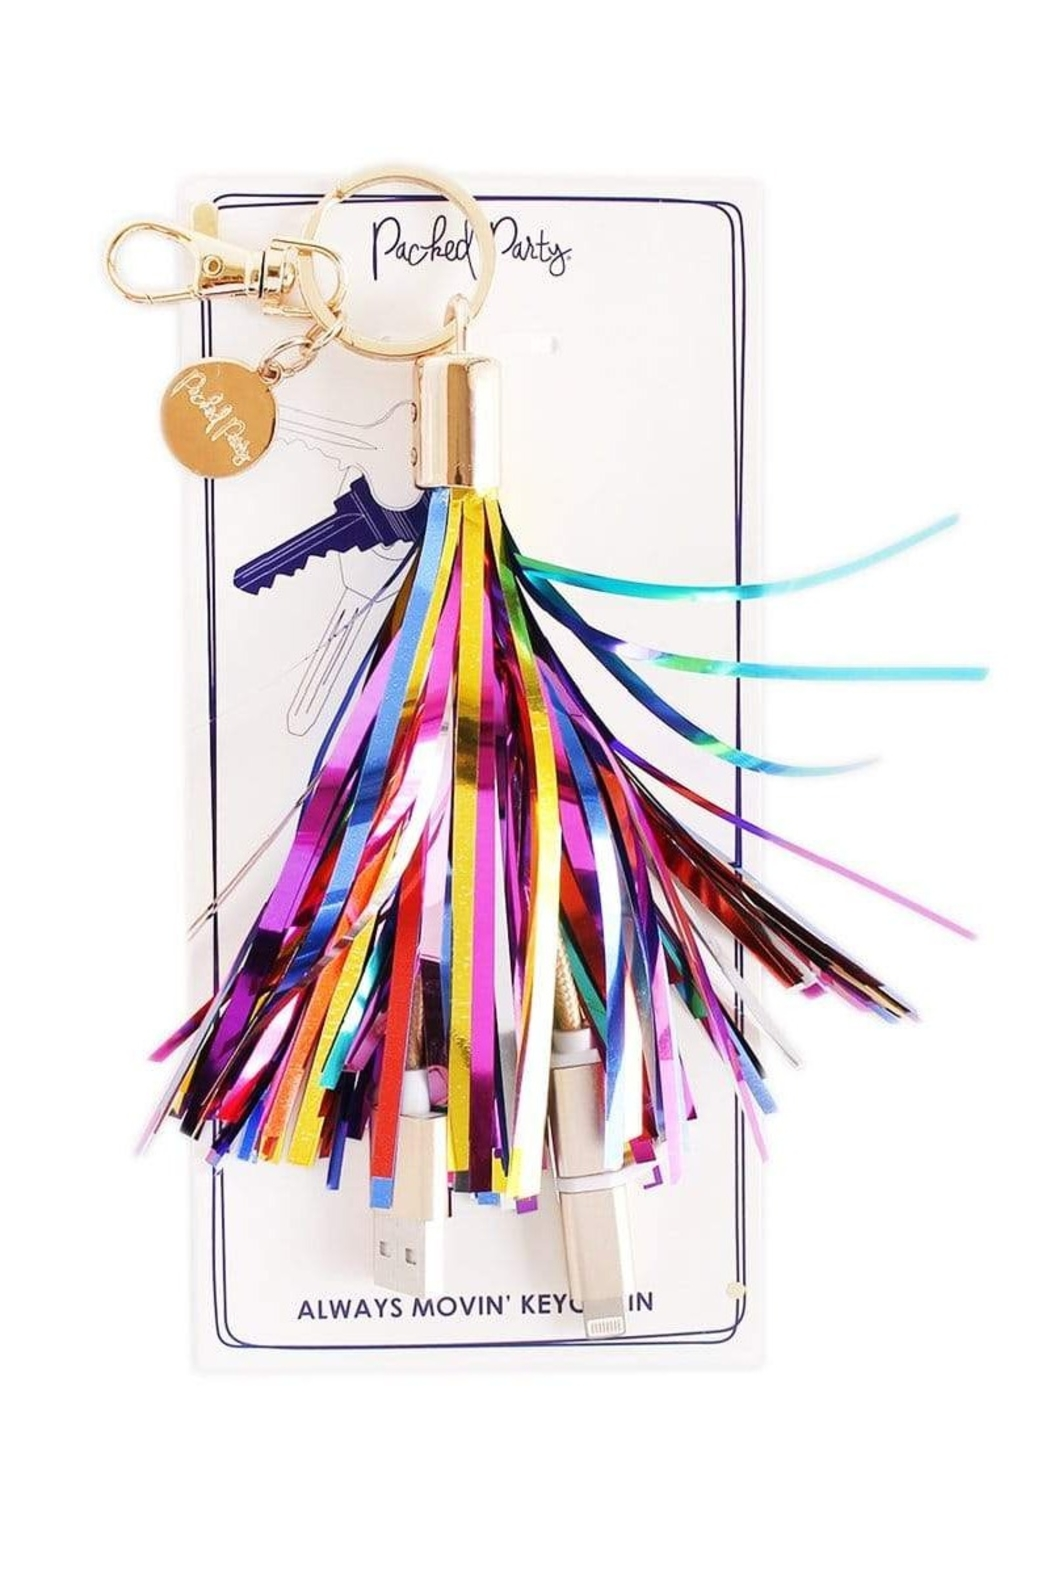 Packed Party Charging Cord Keychain - Main Image